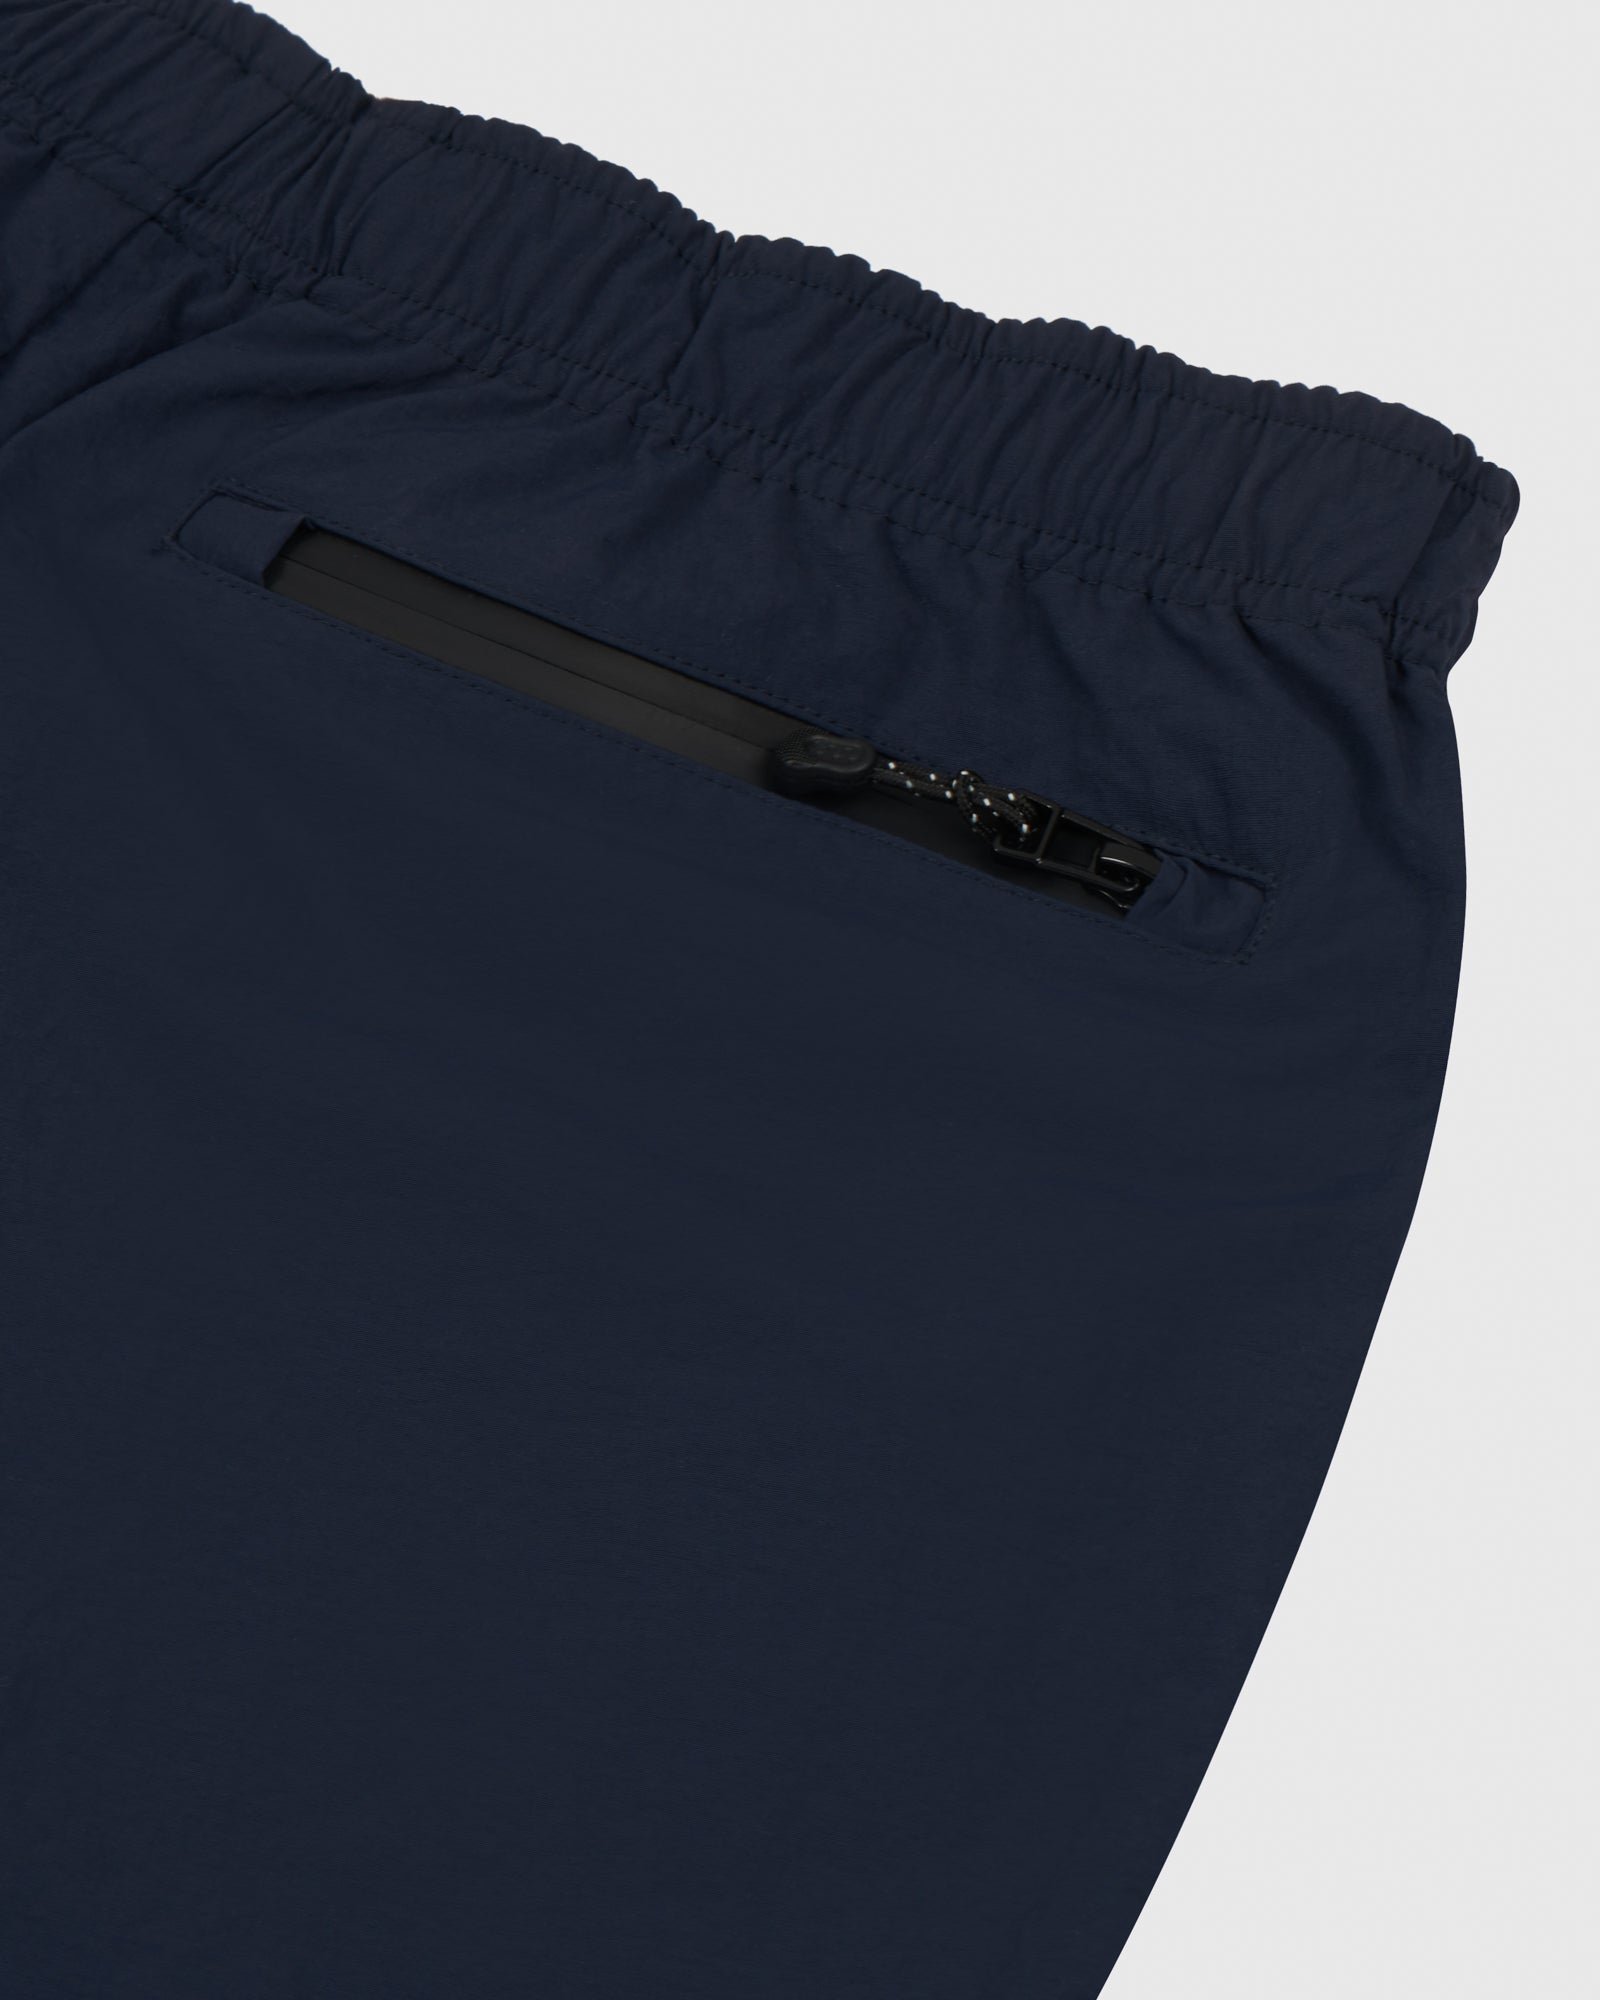 OVO NYLON SPLASH PANT - NAVY